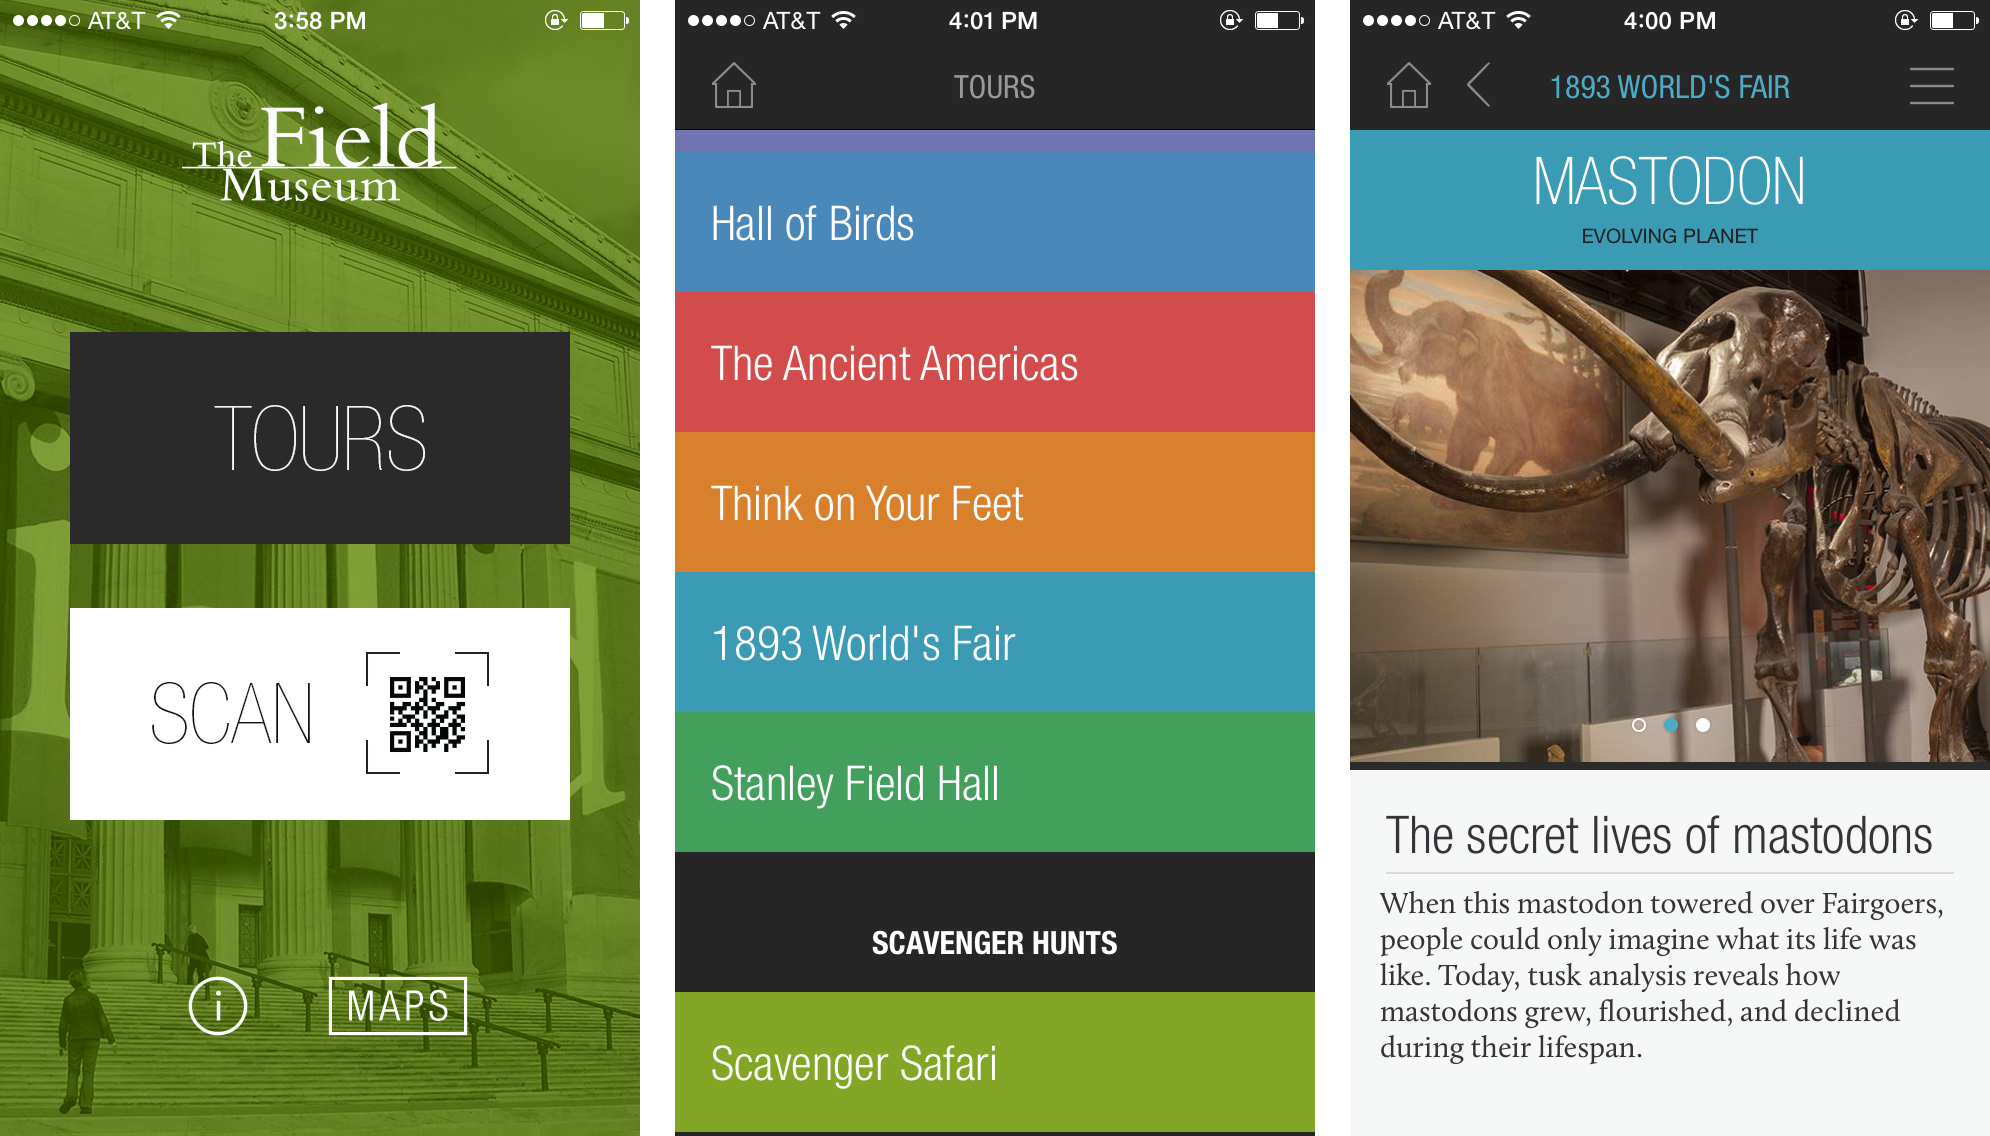 Tours App The Field Museum - Chicago map app